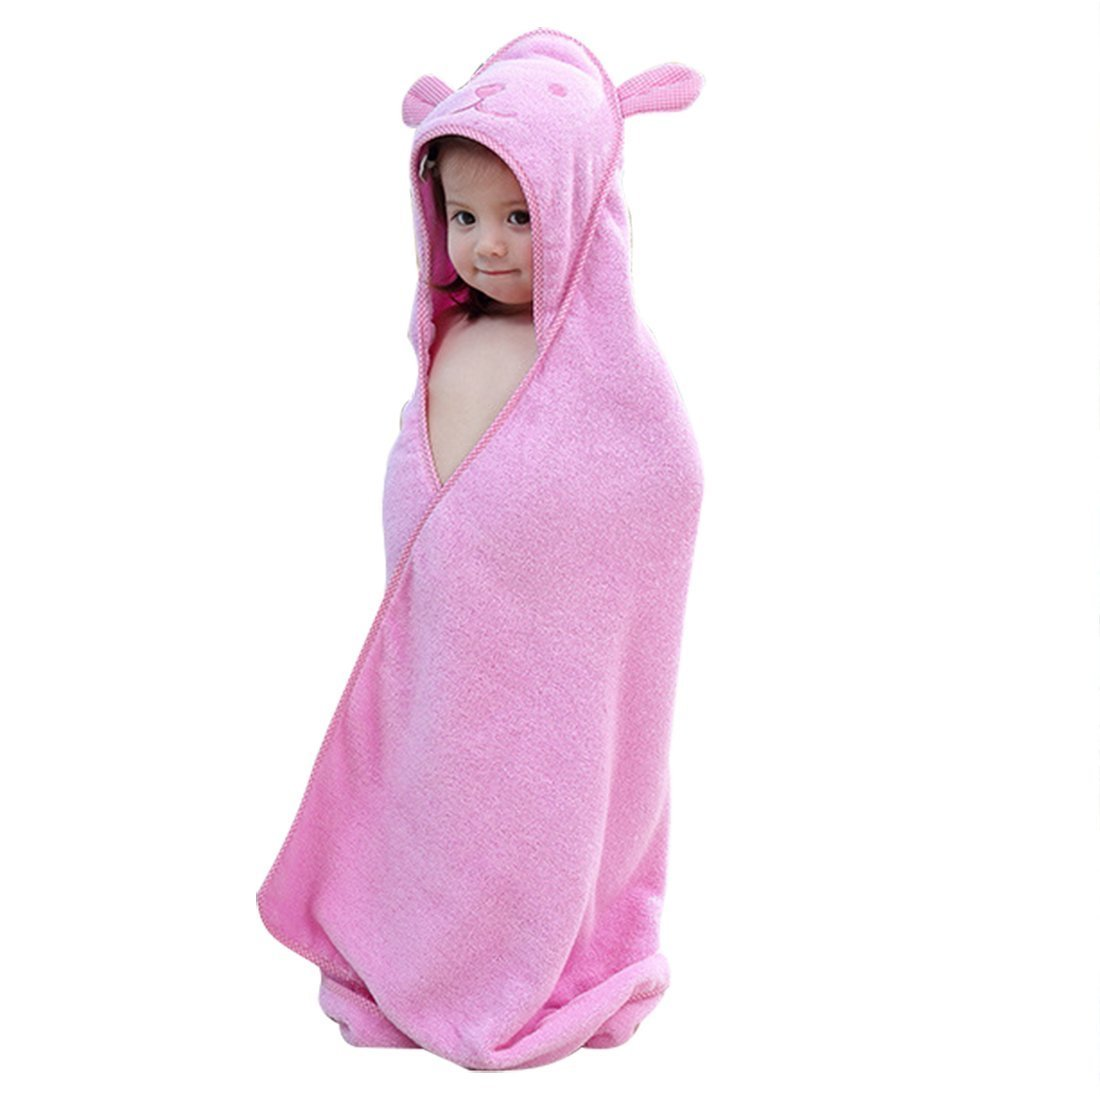 Baby Hooded Towel with Bear Ear- Soft and Thick 100% Cotton Bath Set for Girls, Boys, Infant ad Toddler, Good Choice (Pink)